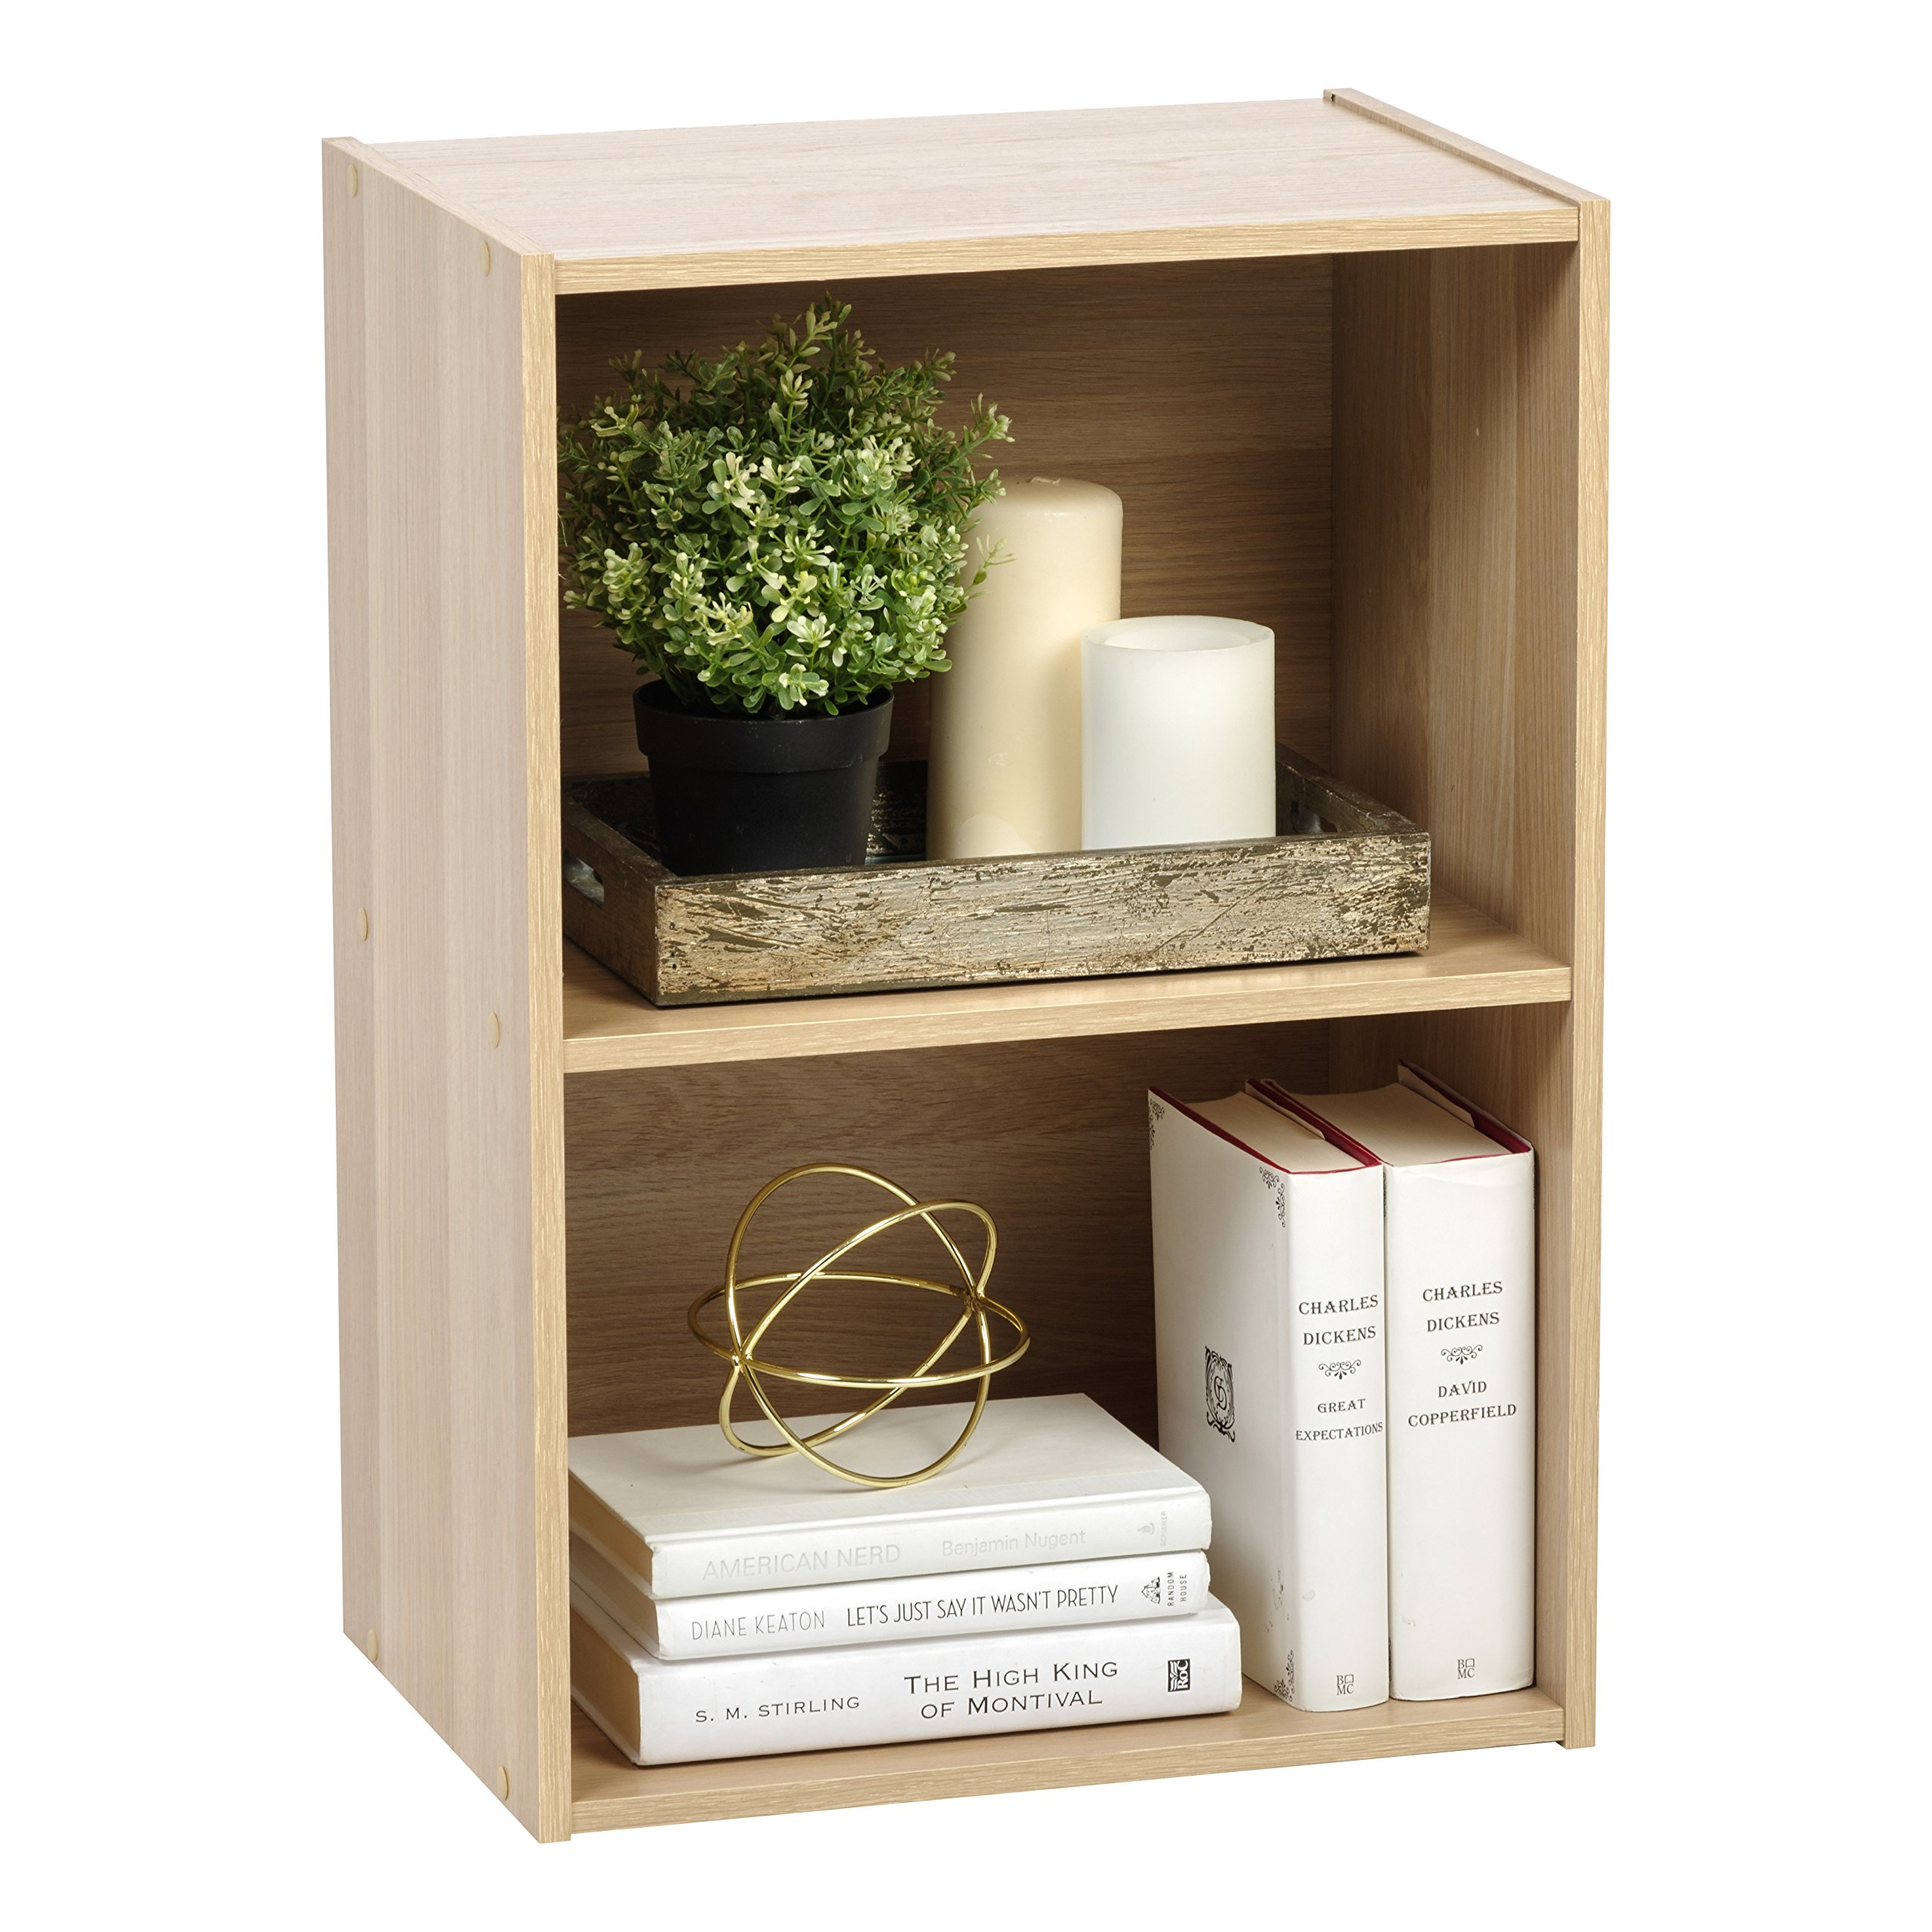 IRIS USA 596164 2-Tier Wood Storage Shelf, Light Brown by IRIS USA, Inc. (Image #7)